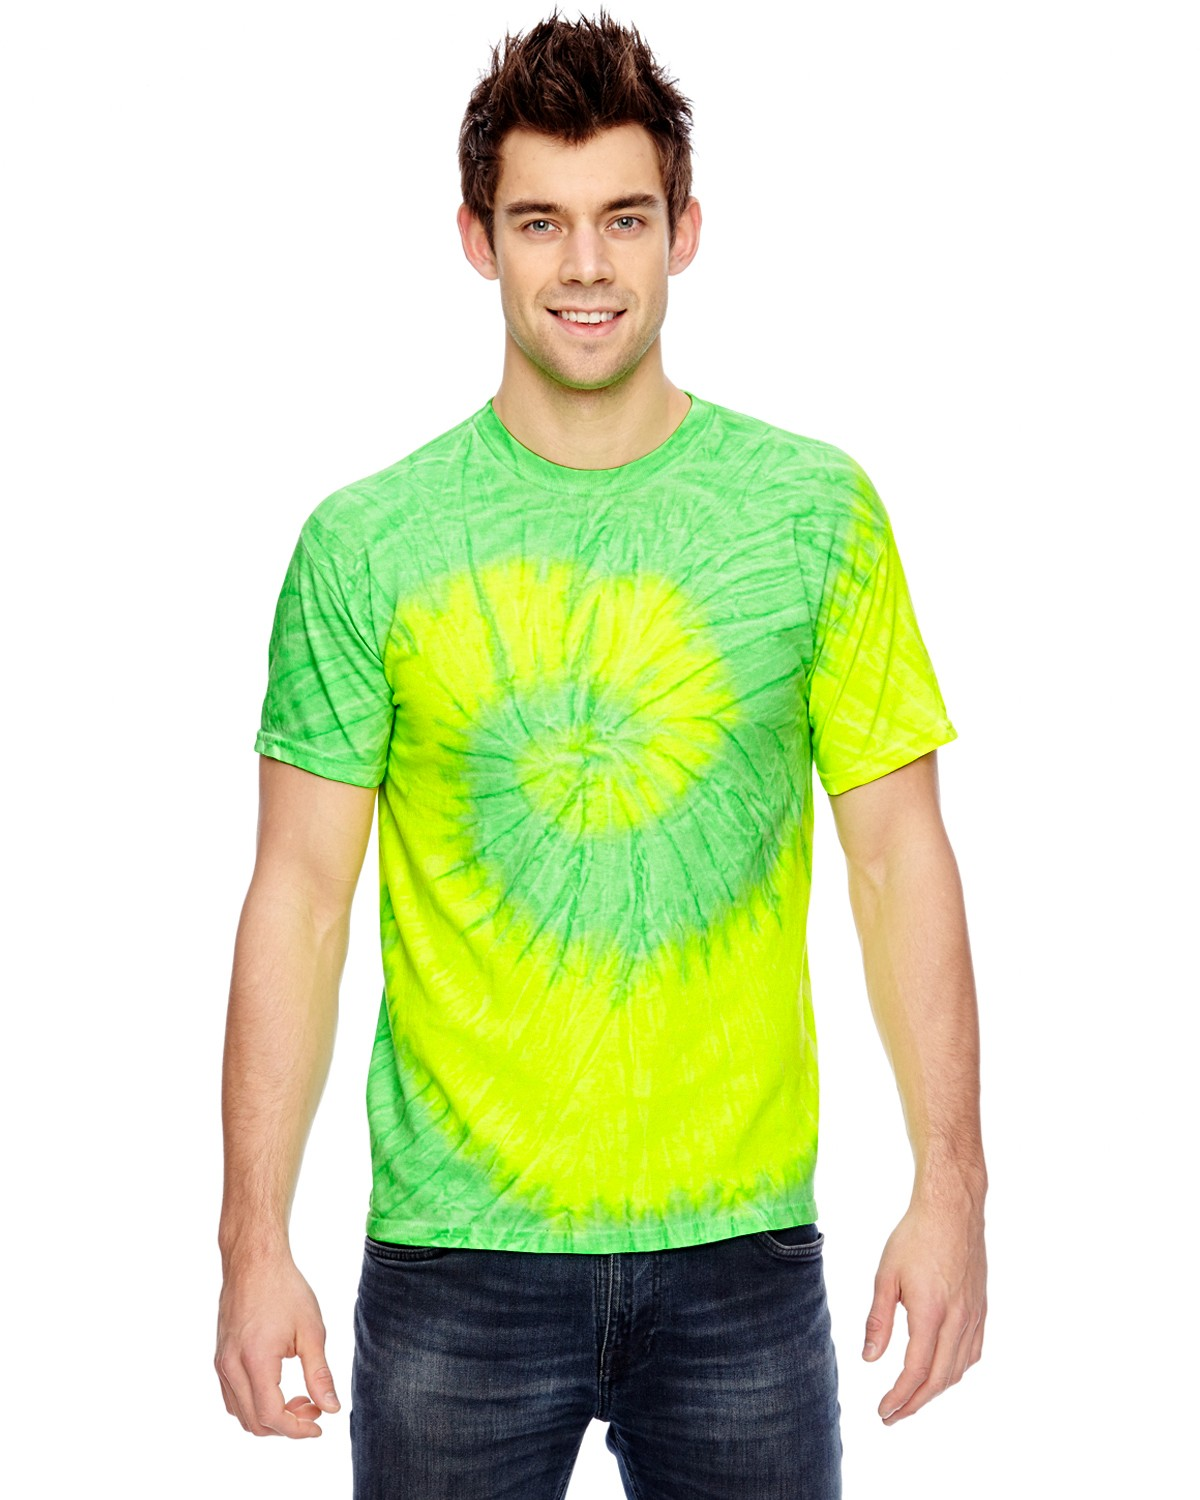 CD100 Tie-Dye FLO YELLOW/LIME